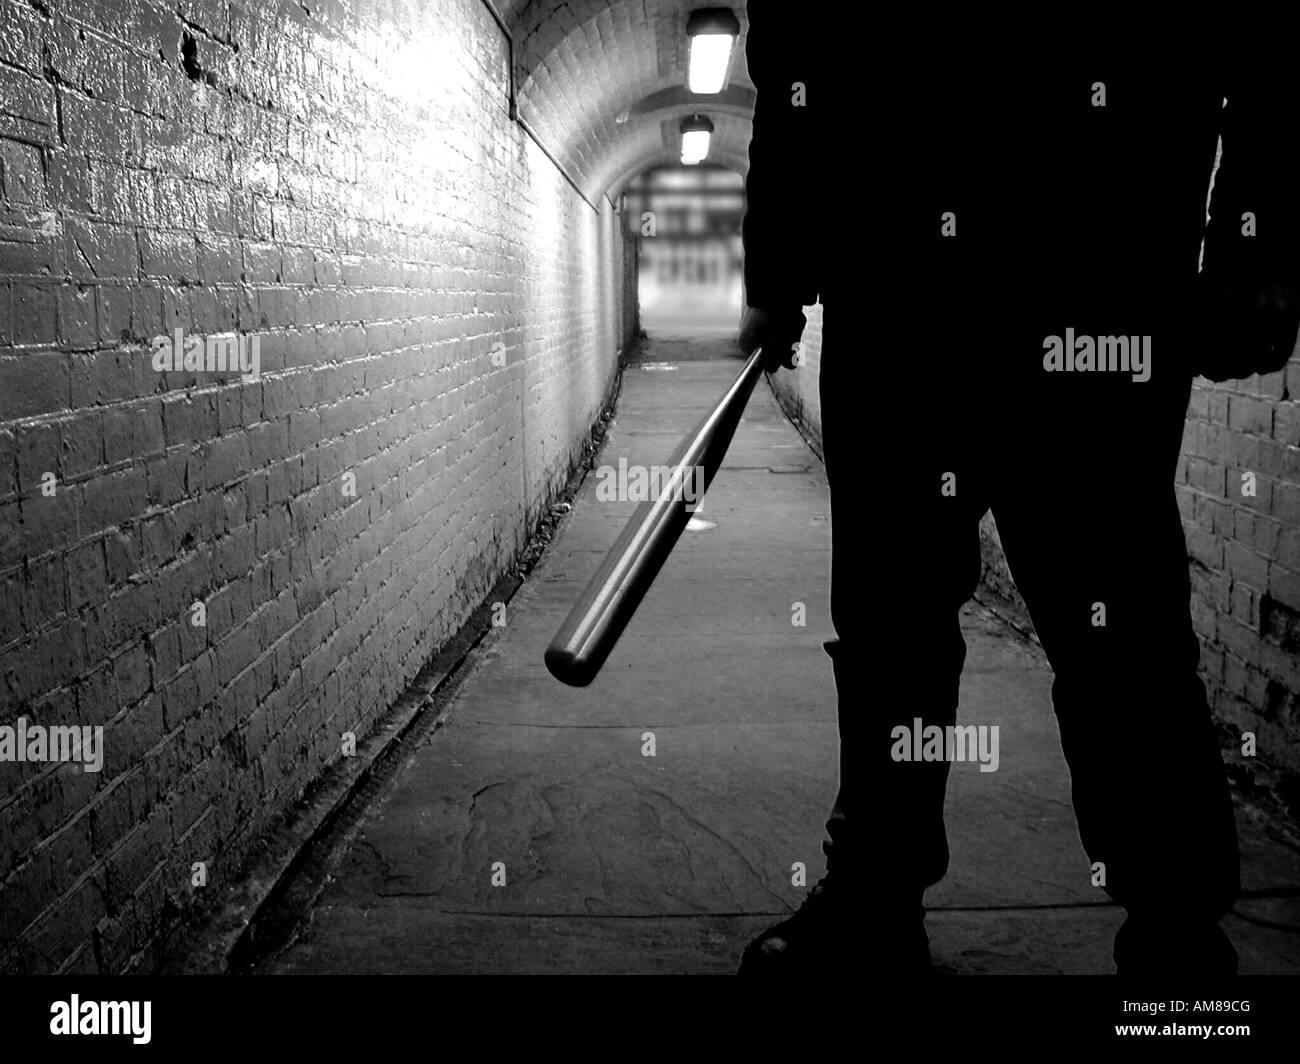 Unidentified thug with a baseball bat in a tunnel, black and white - Stock Image